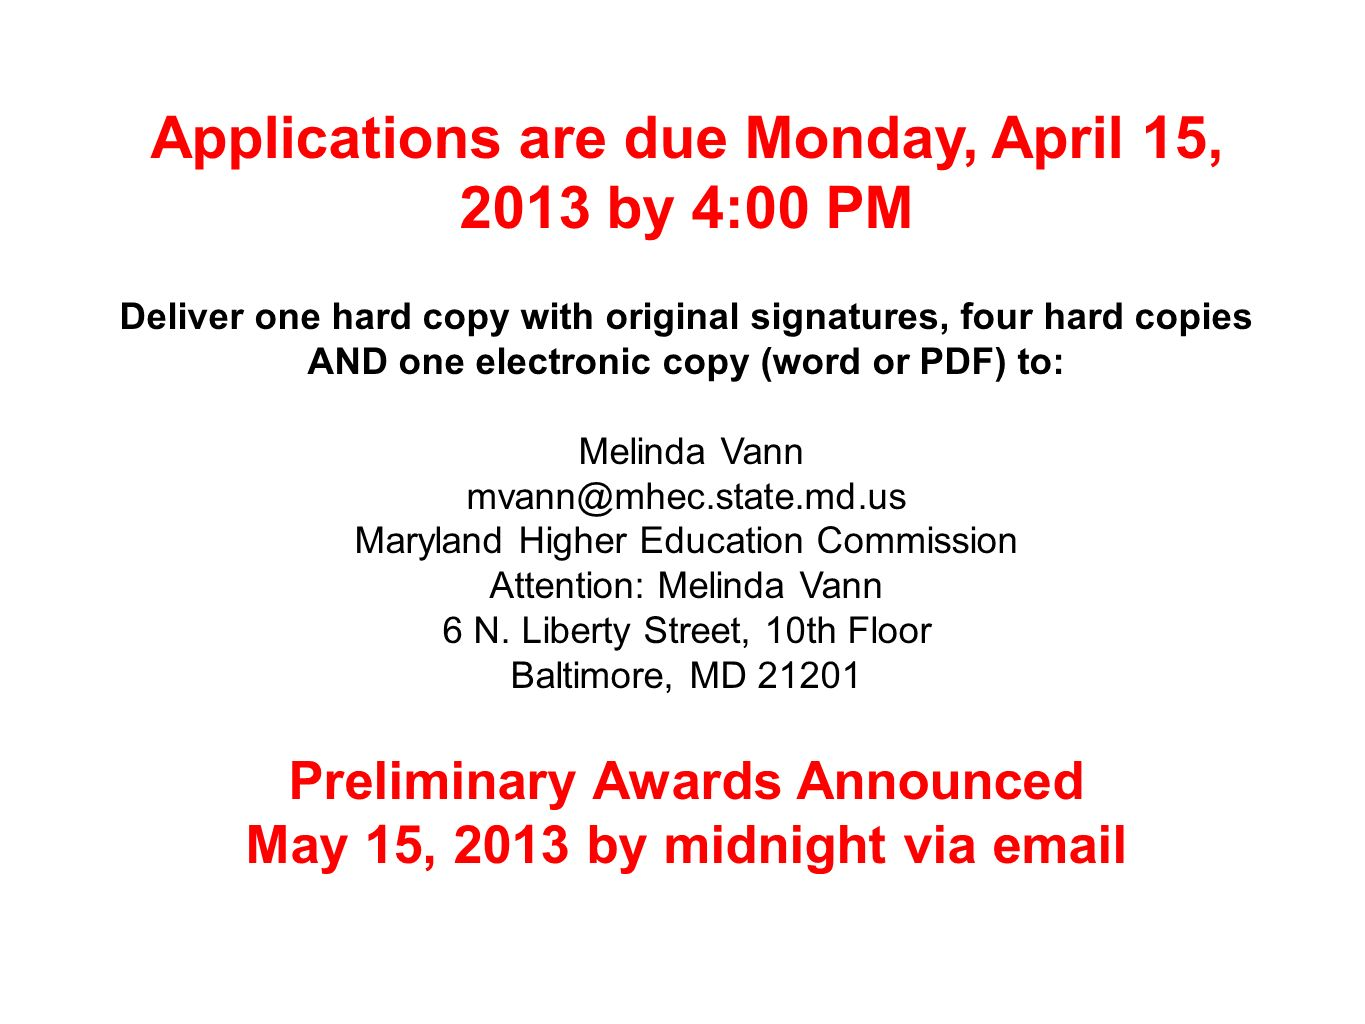 Applications are due Monday, April 15, 2013 by 4:00 PM Deliver one hard copy with original signatures, four hard copies AND one electronic copy (word or PDF) to: Melinda Vann mvann@mhec.state.md.us Maryland Higher Education Commission Attention: Melinda Vann 6 N.